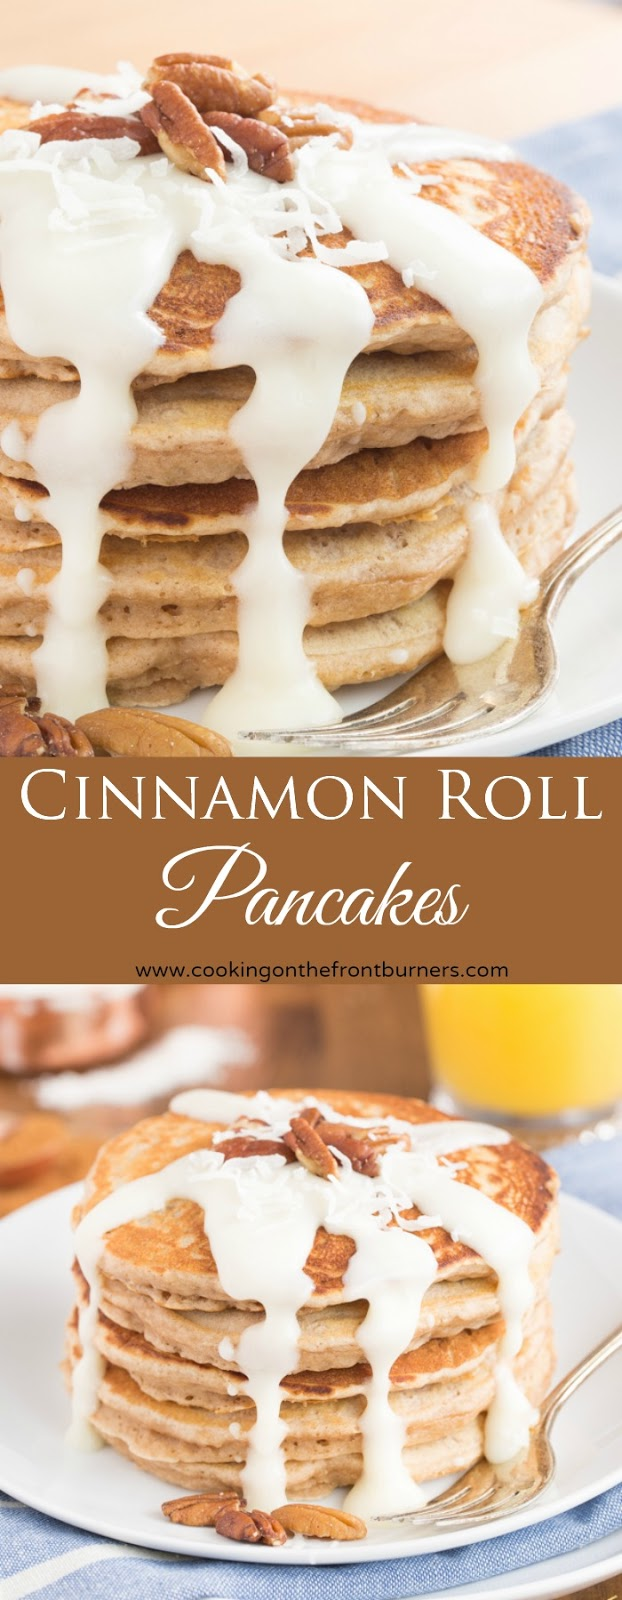 Cinnamon Roll Pancakes | Cooking on the Front Burner